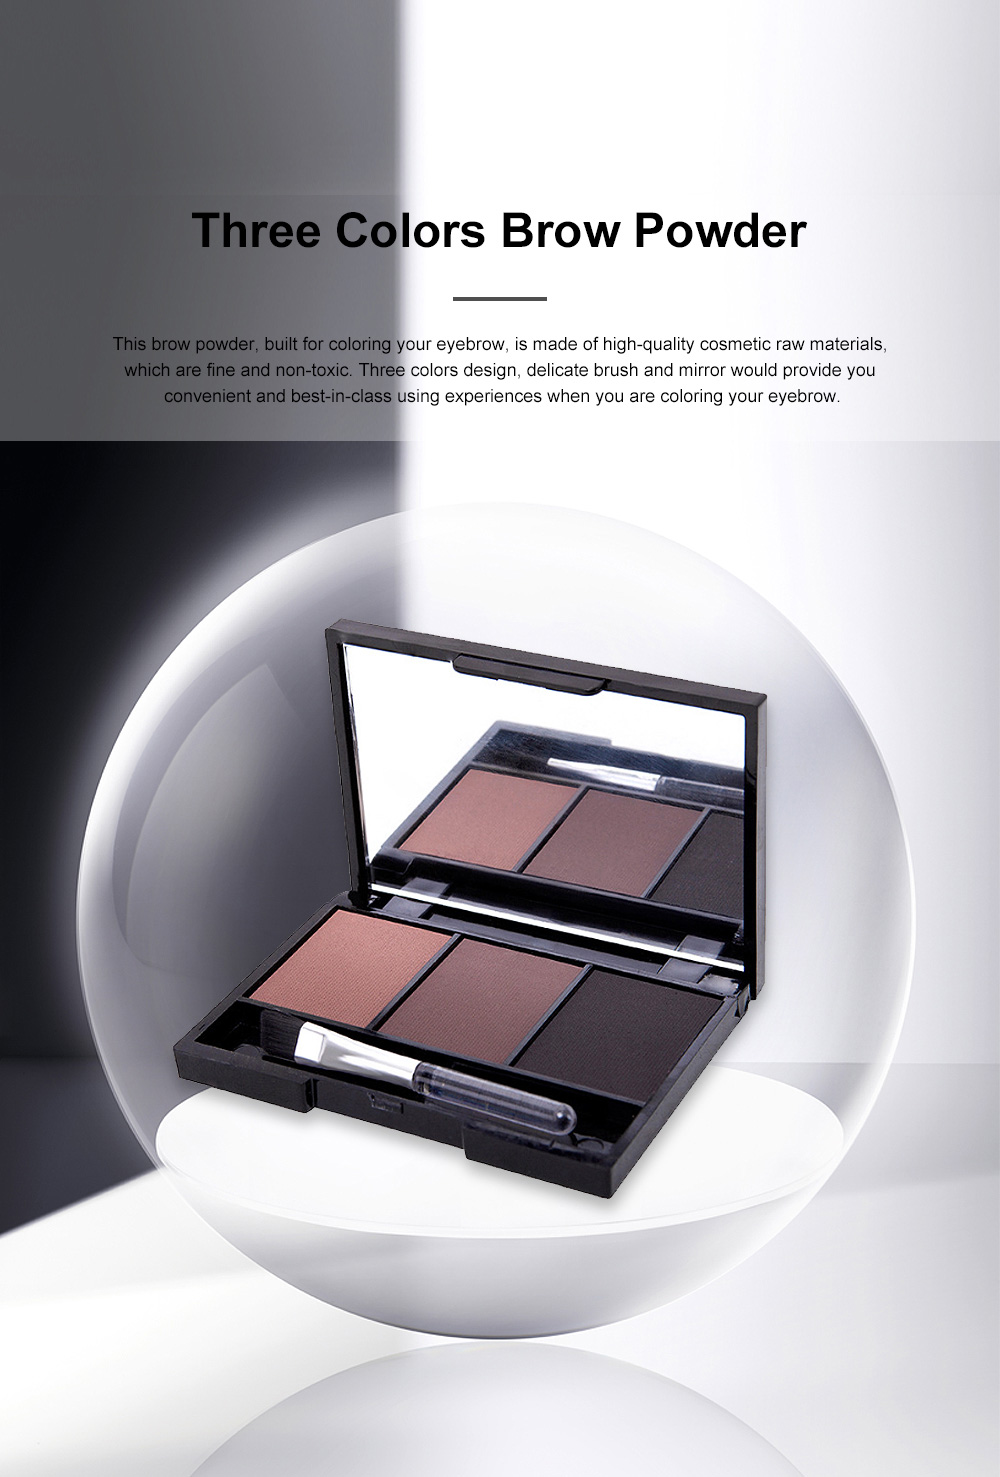 Delicate Fine Three Colors Brow Powder with Brush Mirror Enduring Easy Coloring Eyebrow Makeup Tool Accessories 0